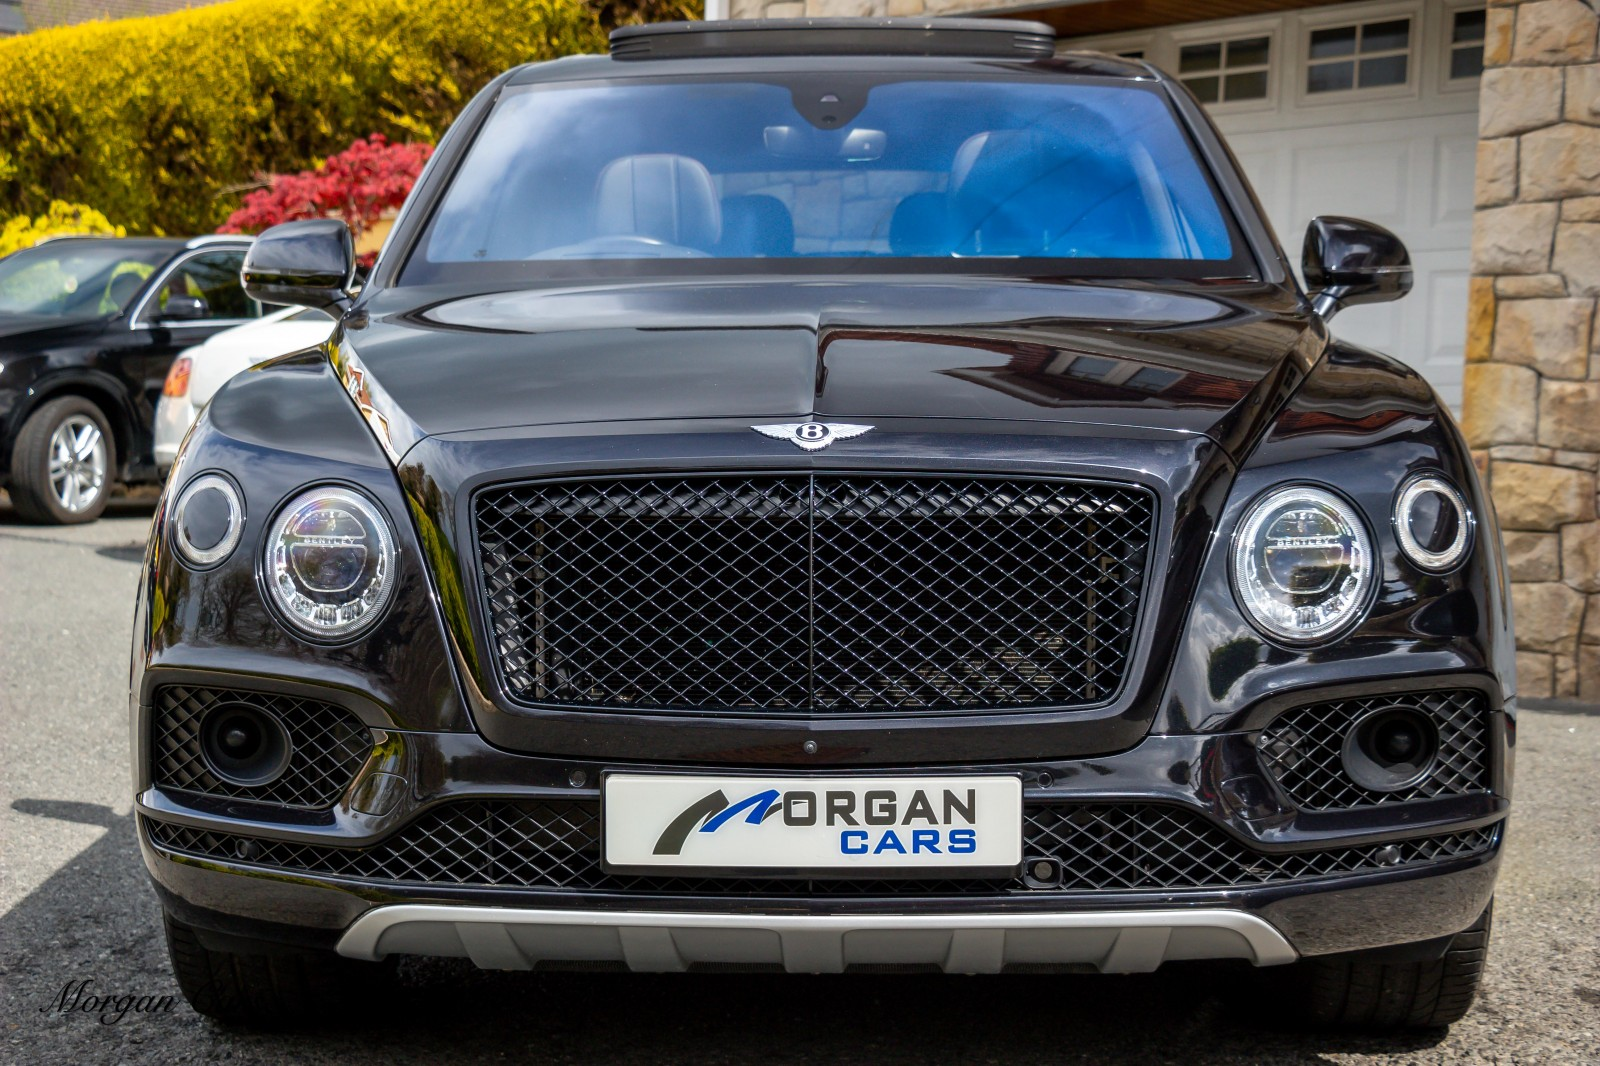 2017 Bentley Bentayga V8 D Diesel Automatic – Morgan Cars 9 Mound Road, Warrenpoint, Newry BT34 3LW, UK full